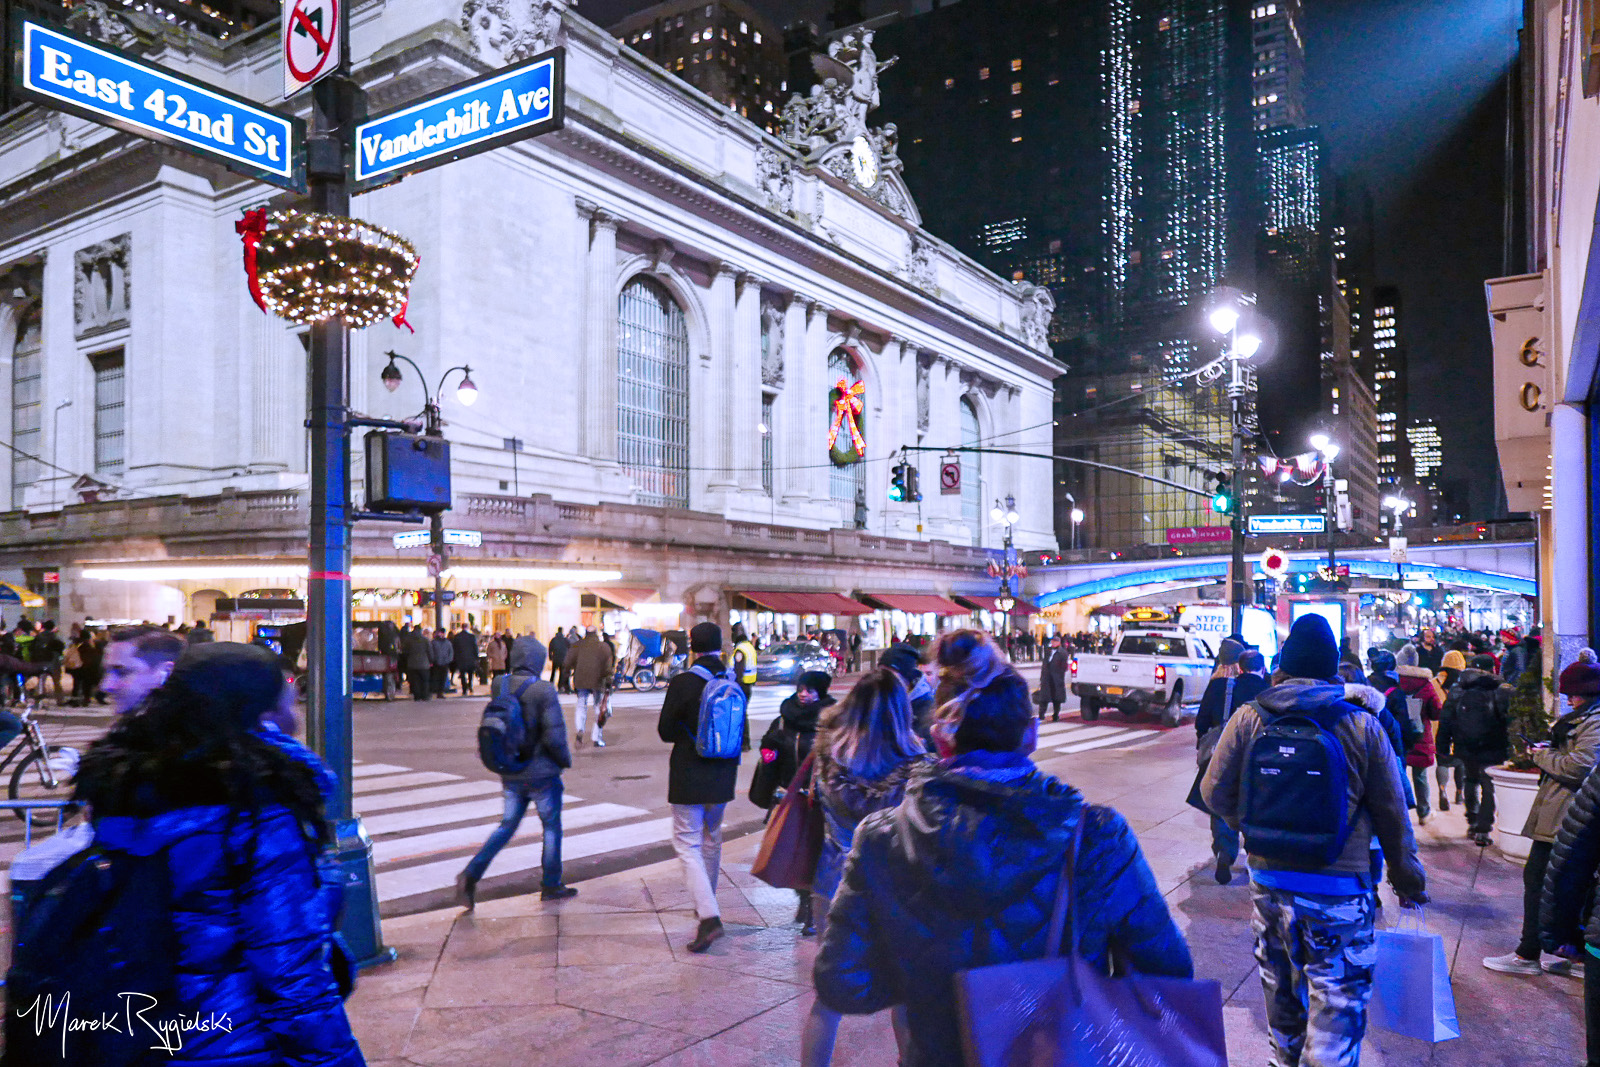 Evening rush hour in New York City - Grand Central Terminal, 42nd Street.